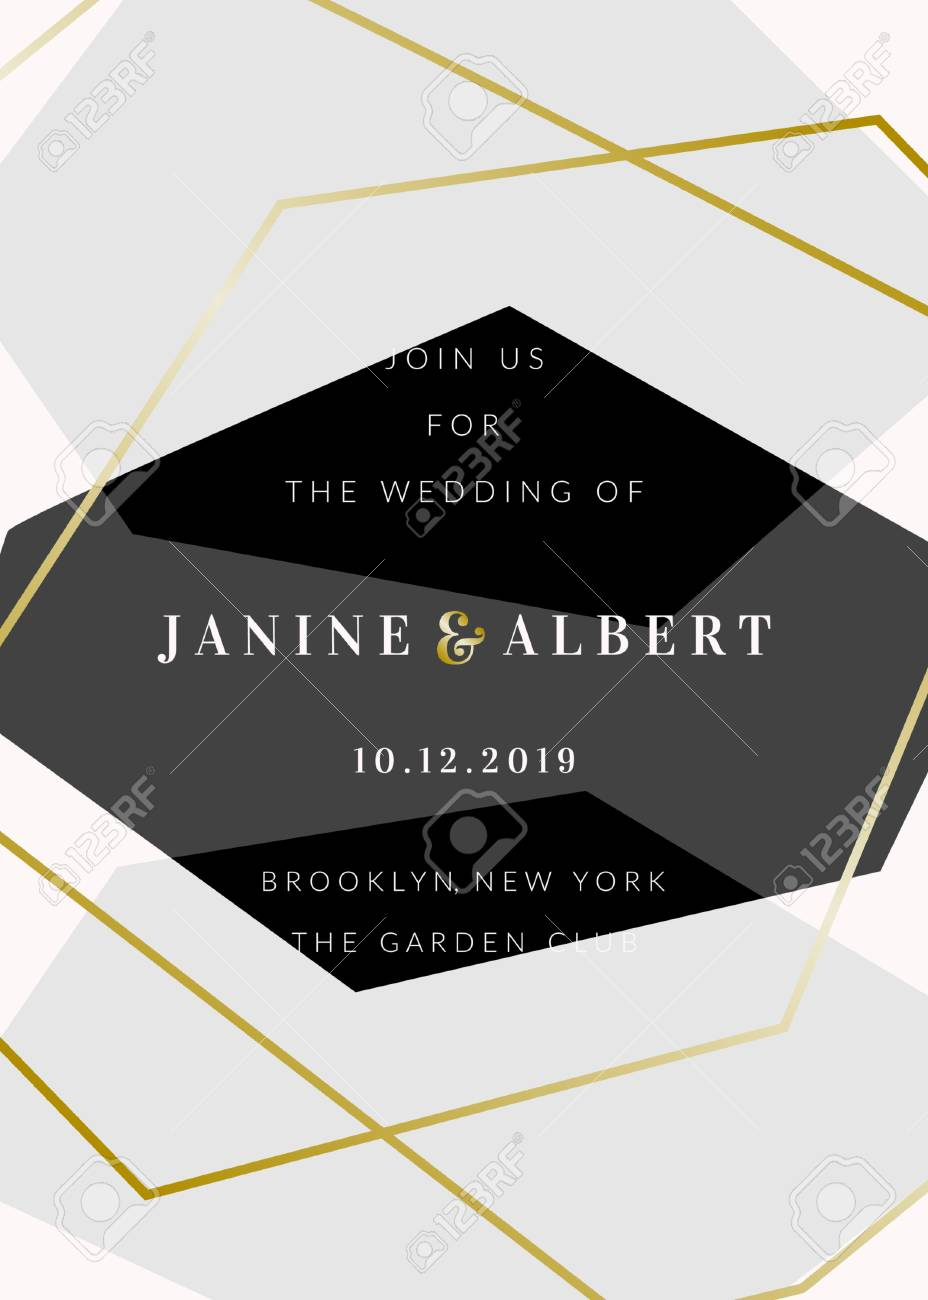 Wedding Invitation Template With Geometric Elements In Black.. Royalty Free  Cliparts, Vectors, And Stock Illustration. Image 127103132.